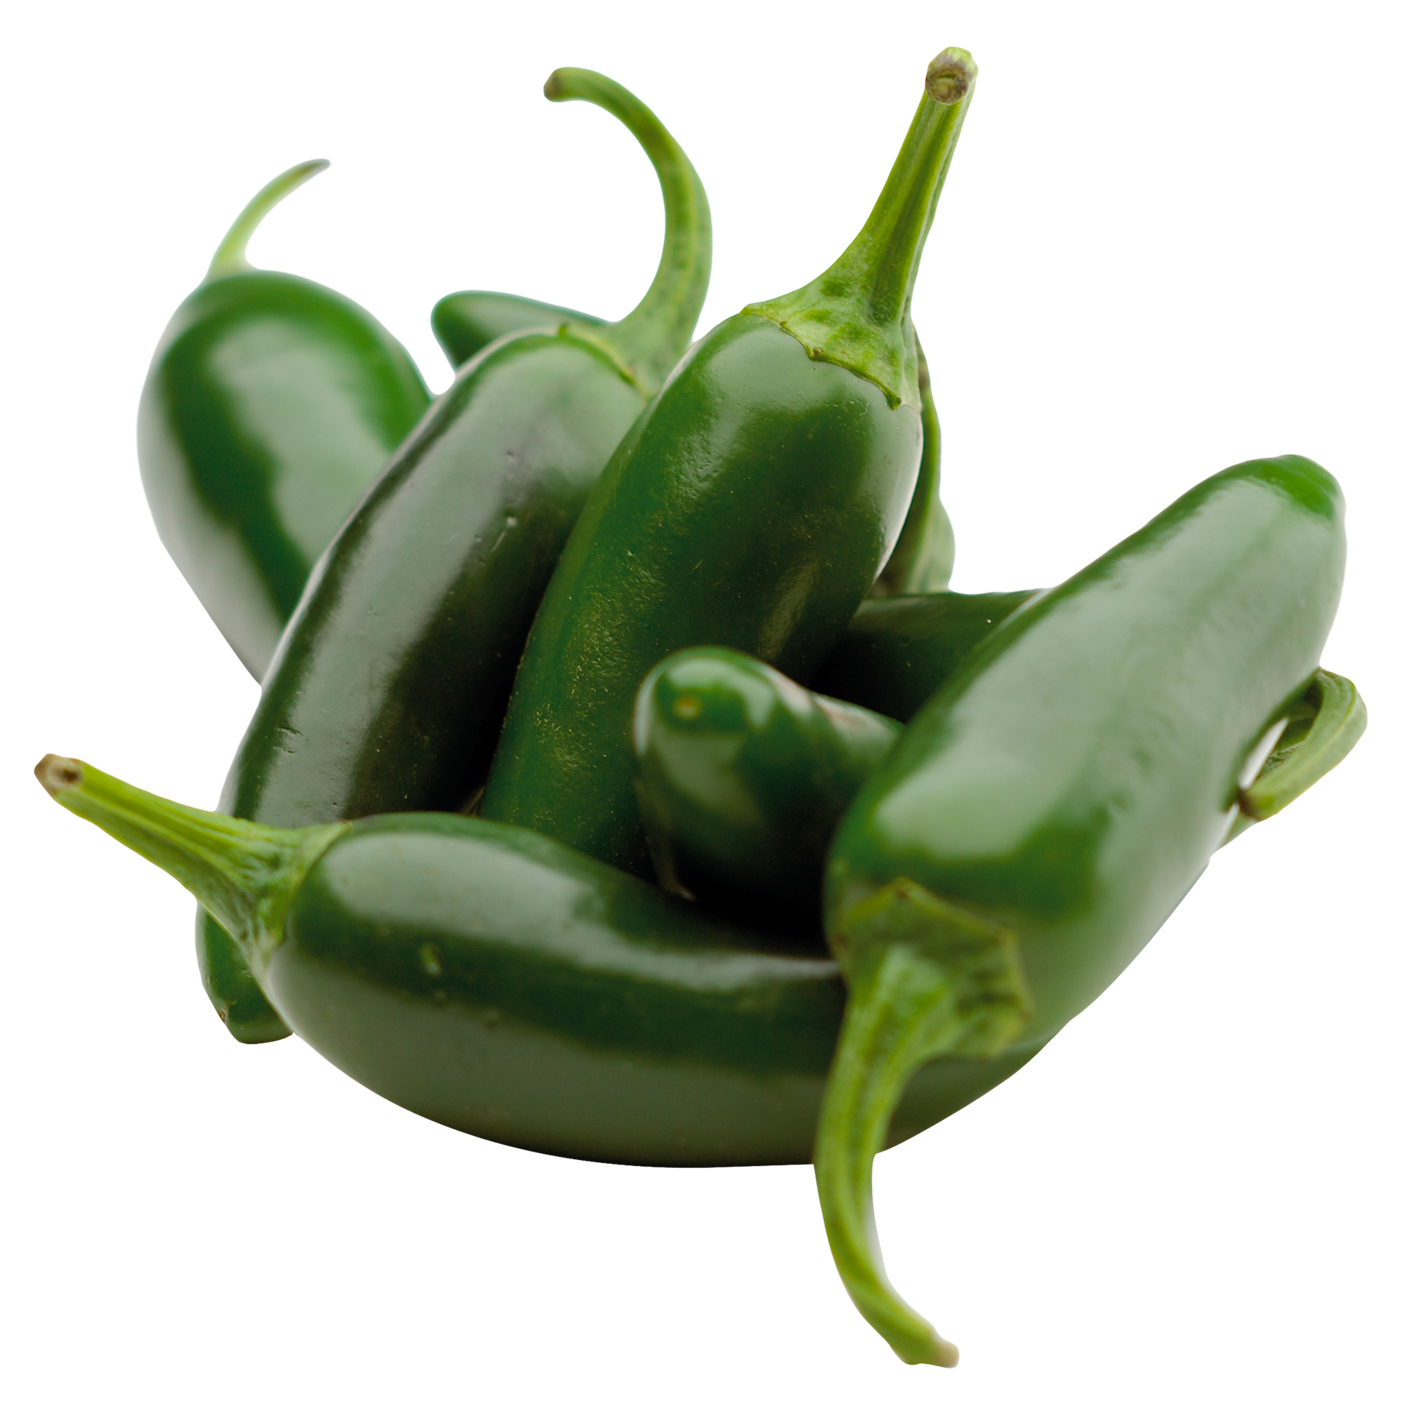 green chile png